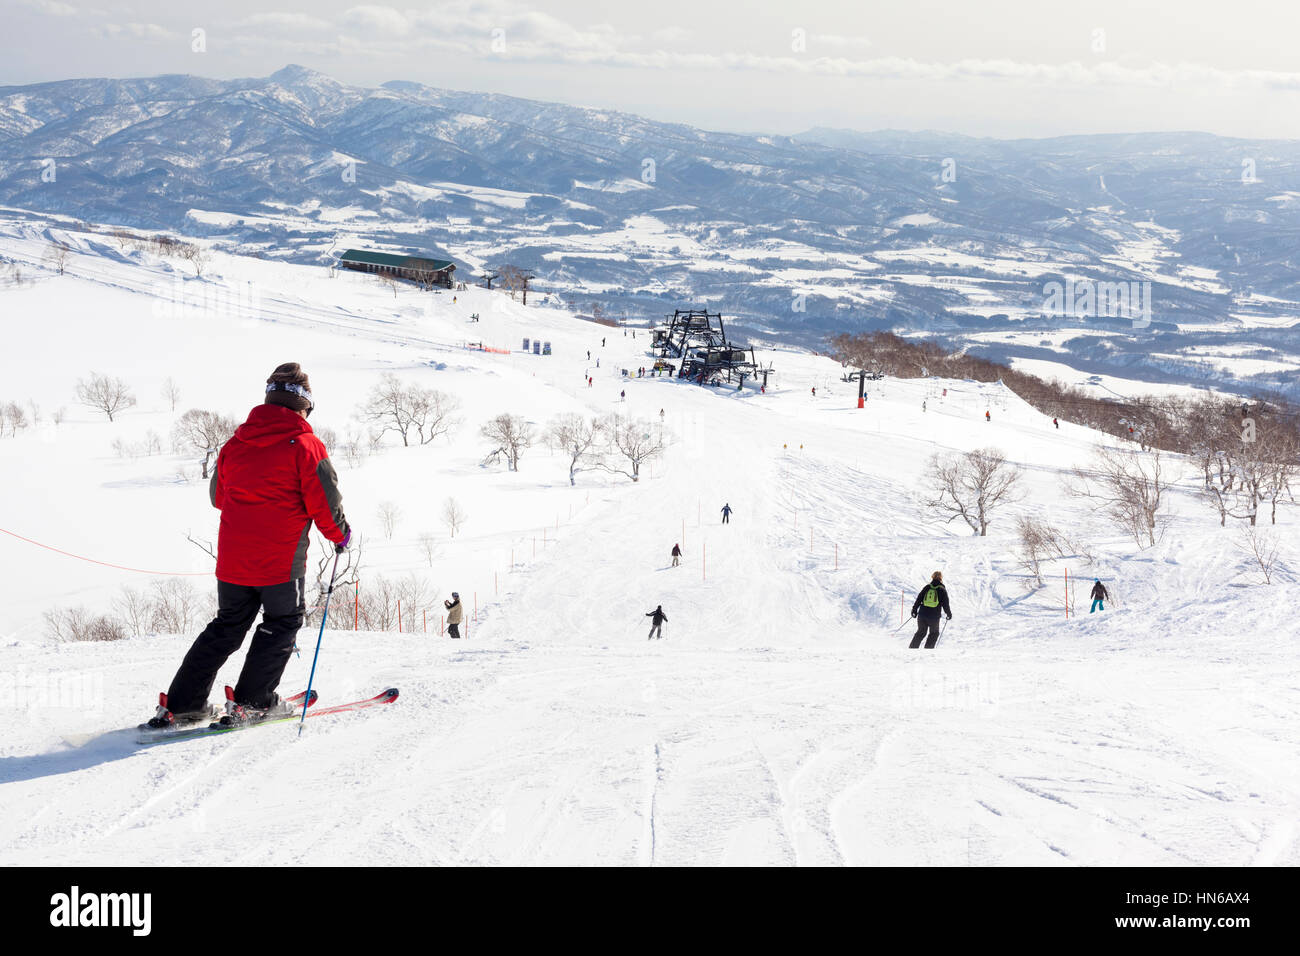 Niseko, Japan - March 4, 2012: Wide view showing skiers, slopes and lifts on Mount Annupuri in the ski resort of - Stock Image